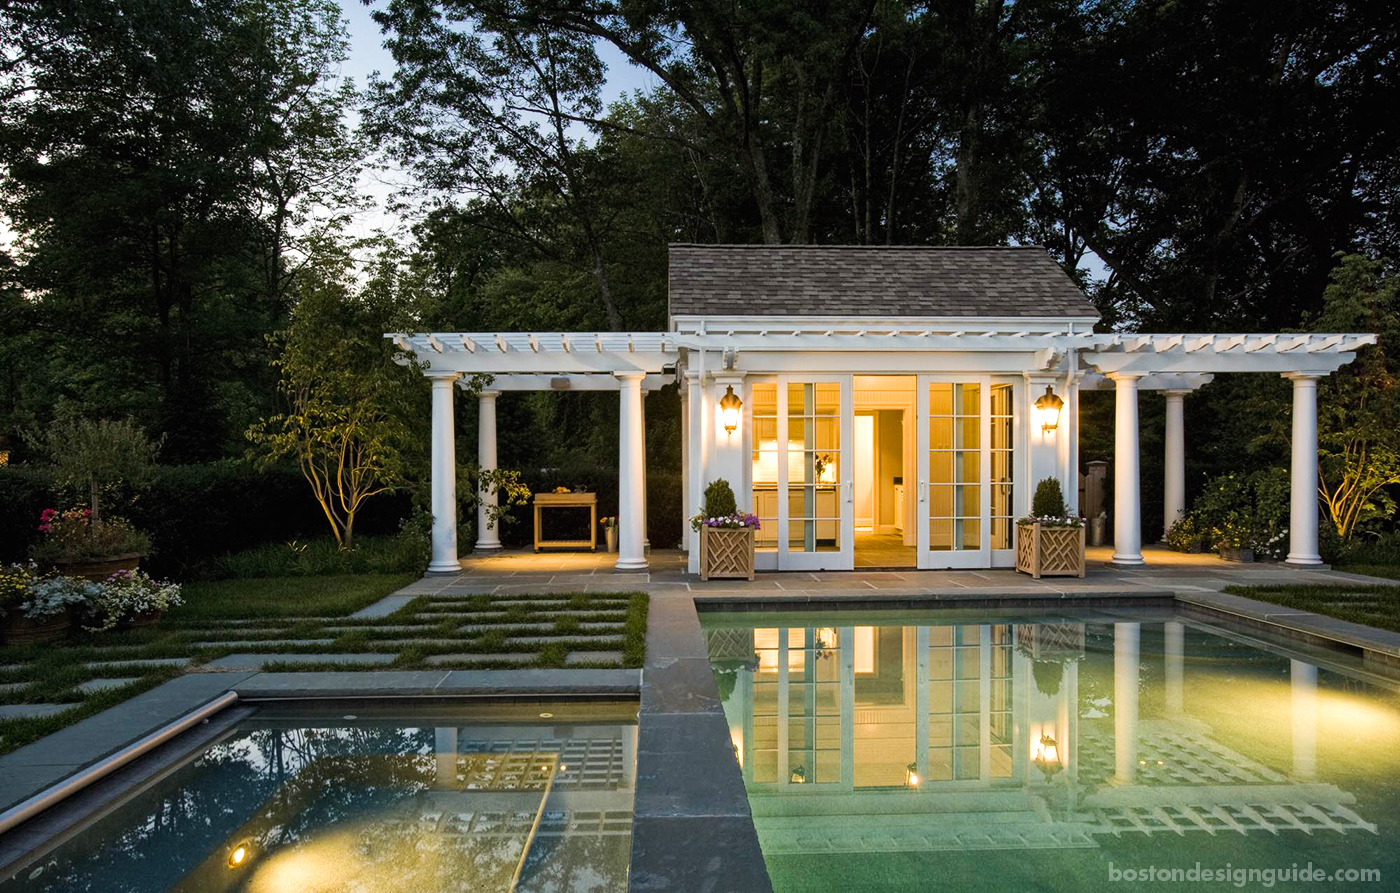 Pool terrace at dusk night designed by Dan Gordon Landscape Architects